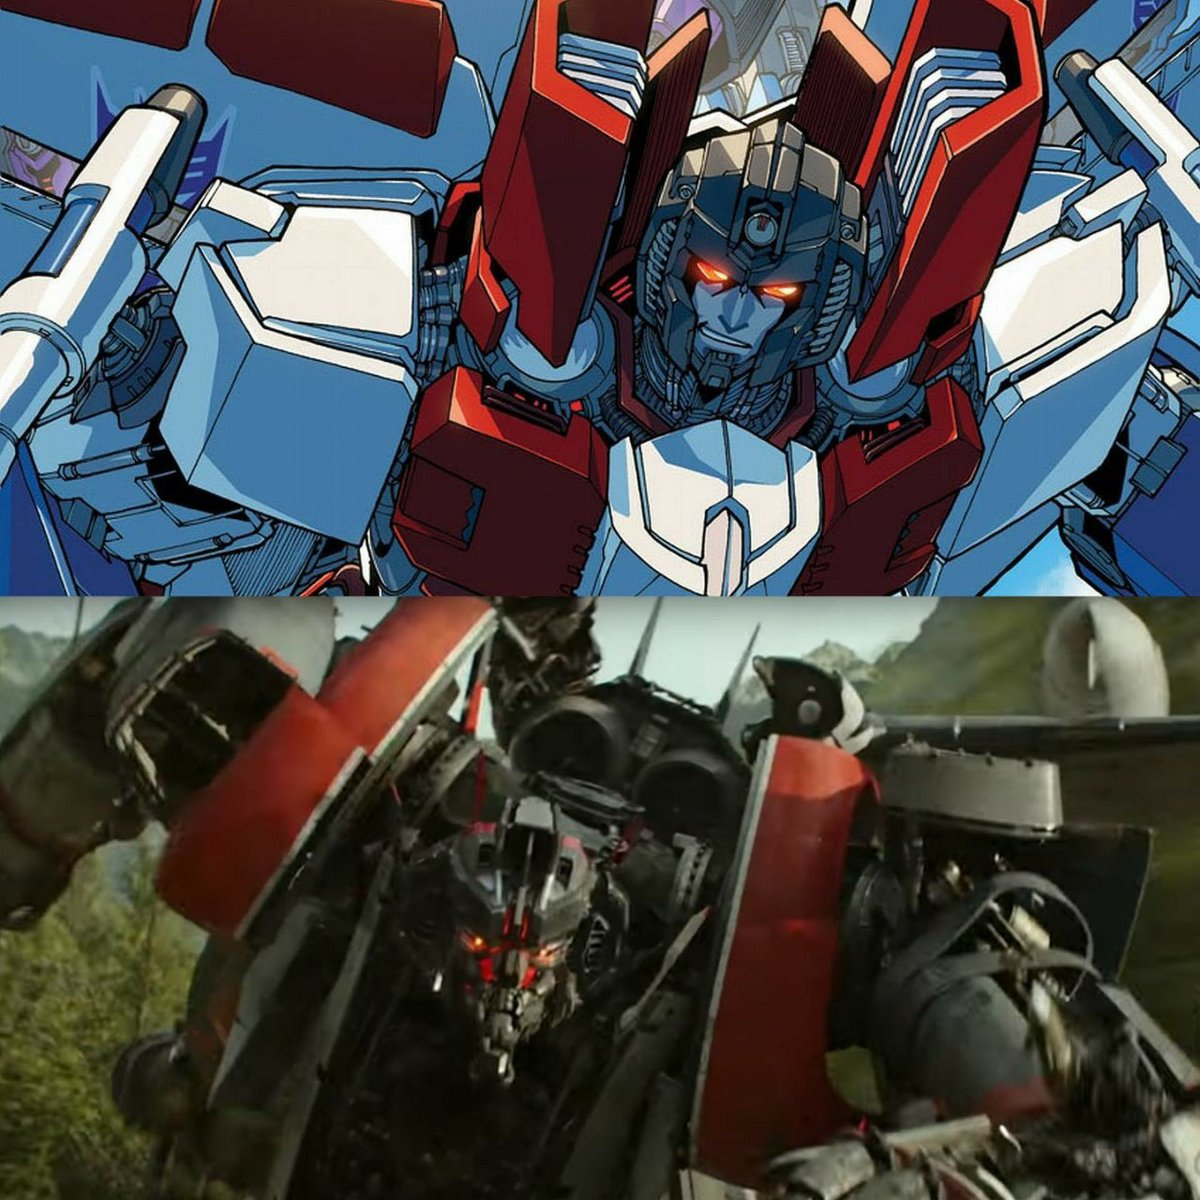 Transformers News: Paramount Confirms Identity of Jet Transformer in Bumblebee Movie